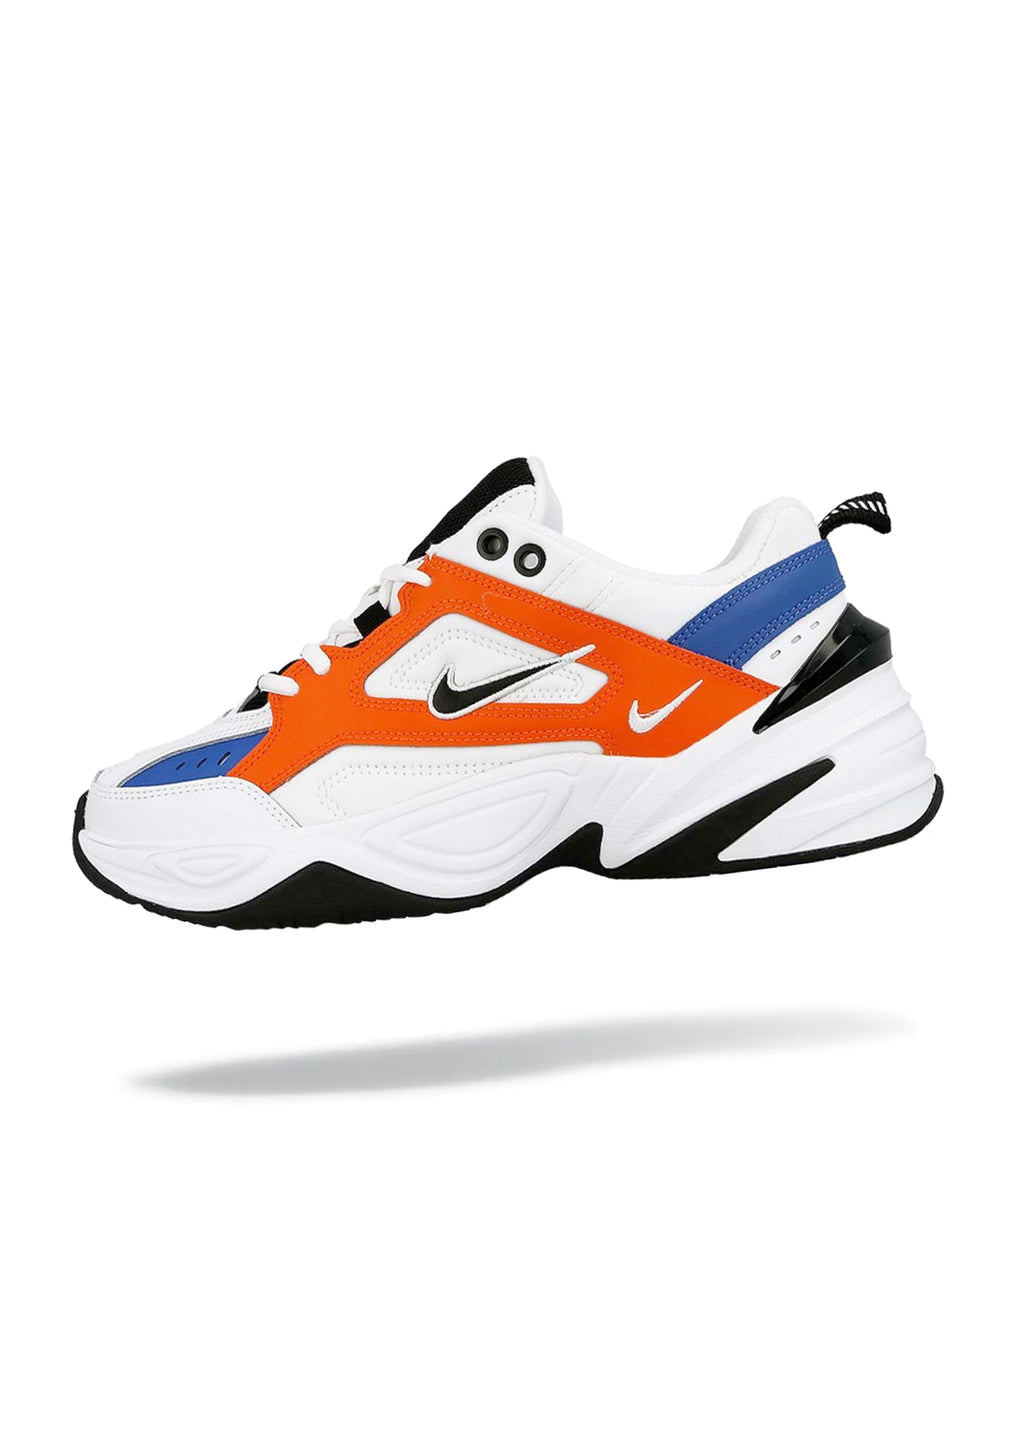 Nike M2K Tekno White Black Orange (W)